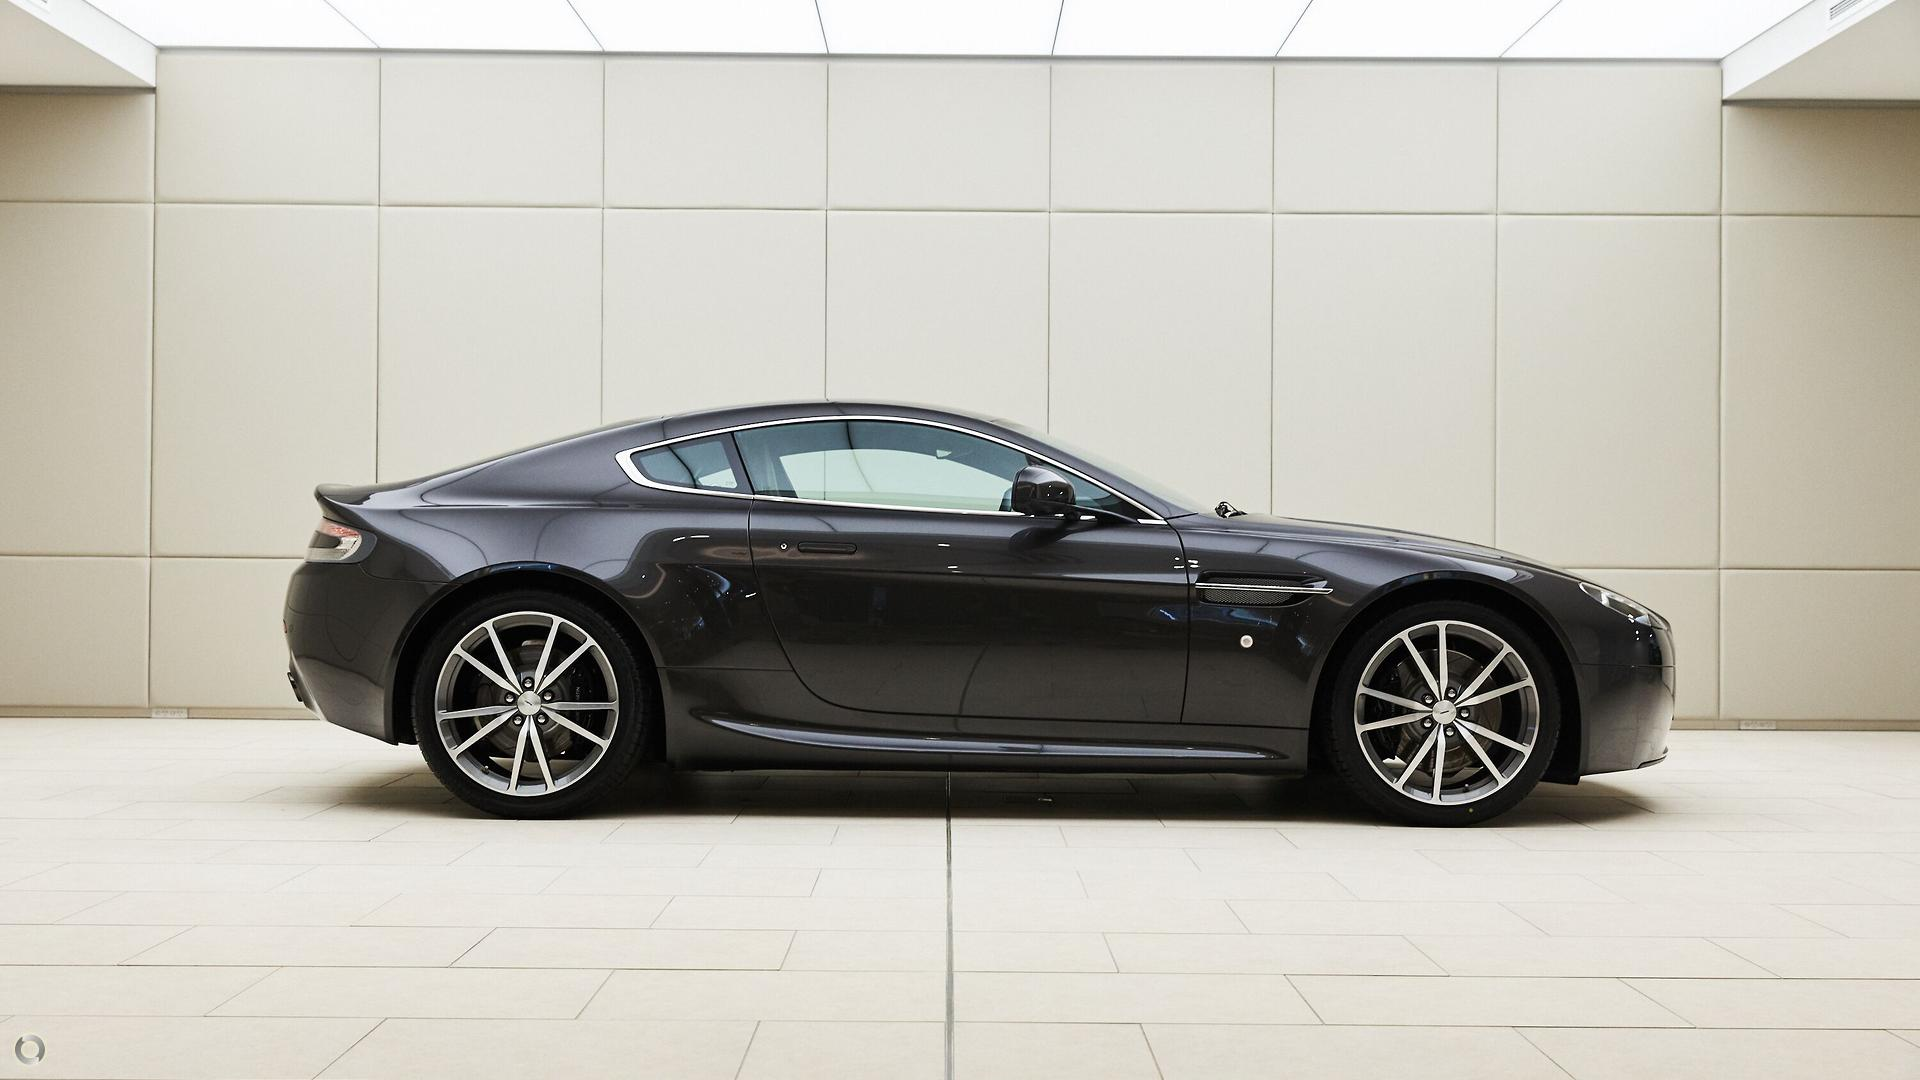 2010 Aston Martin V8 (No Series)